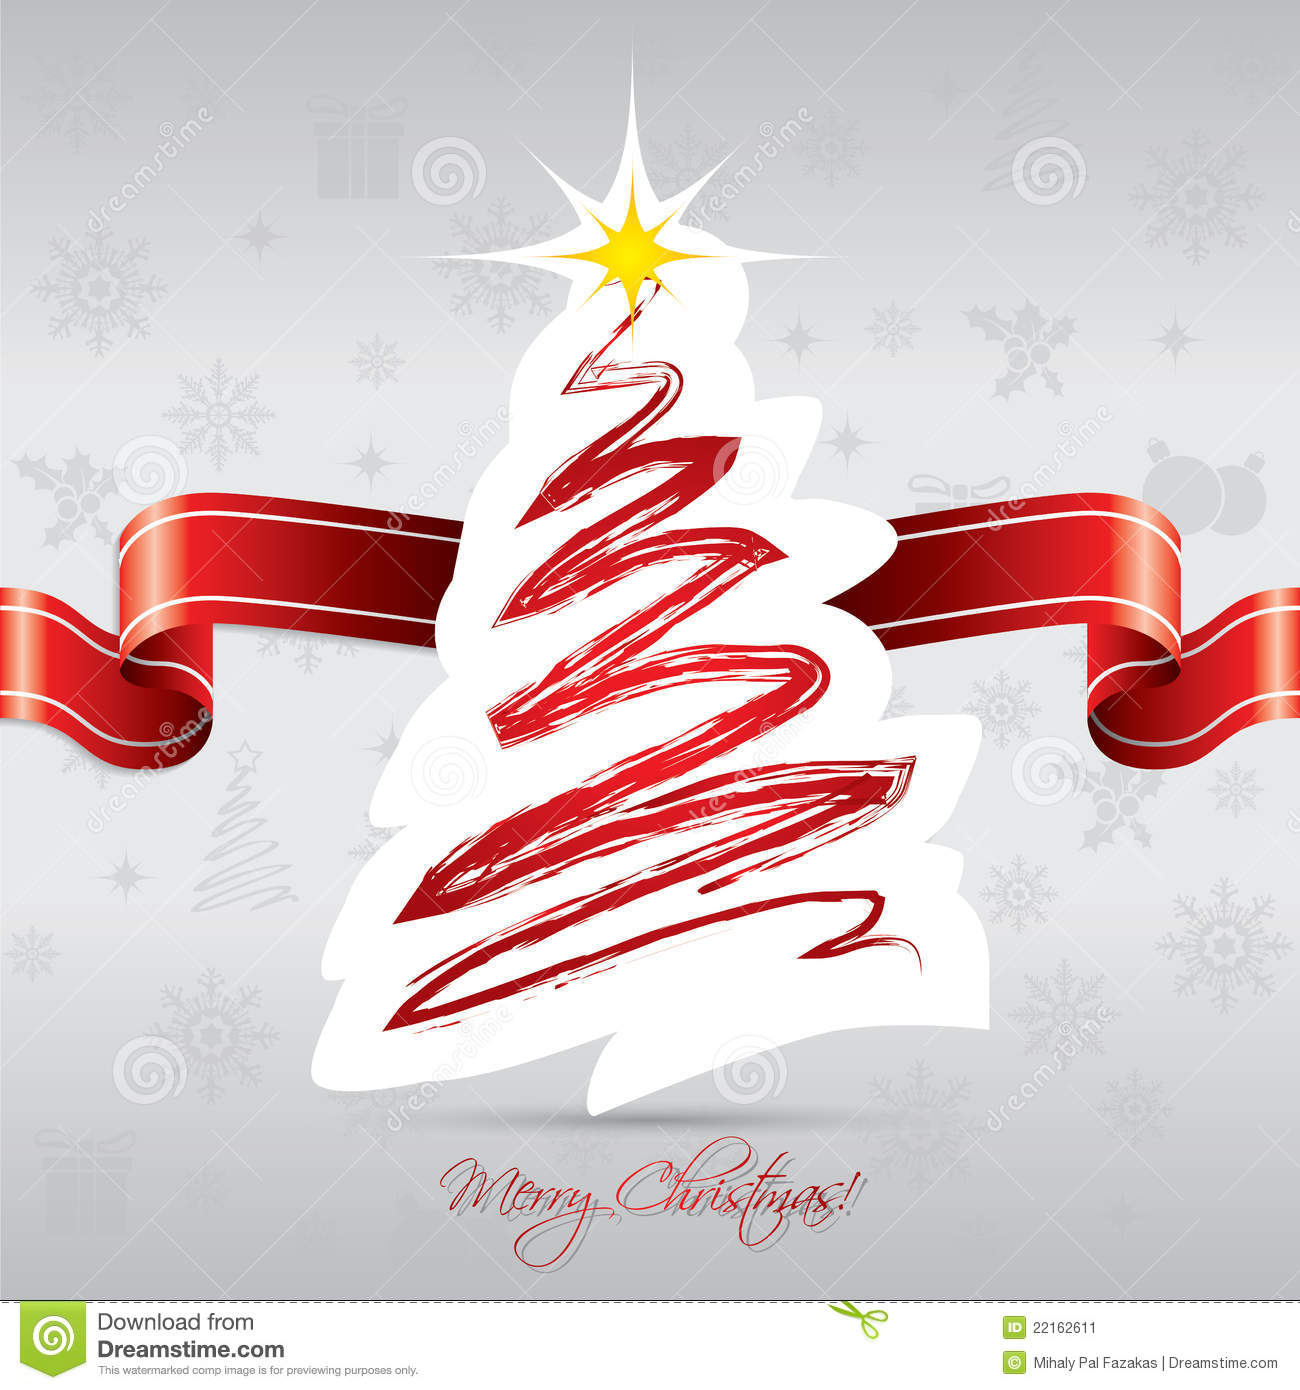 Christmas Tree With Red Ribbon: Christmas Tree Card With Red Ribbon Stock Vector